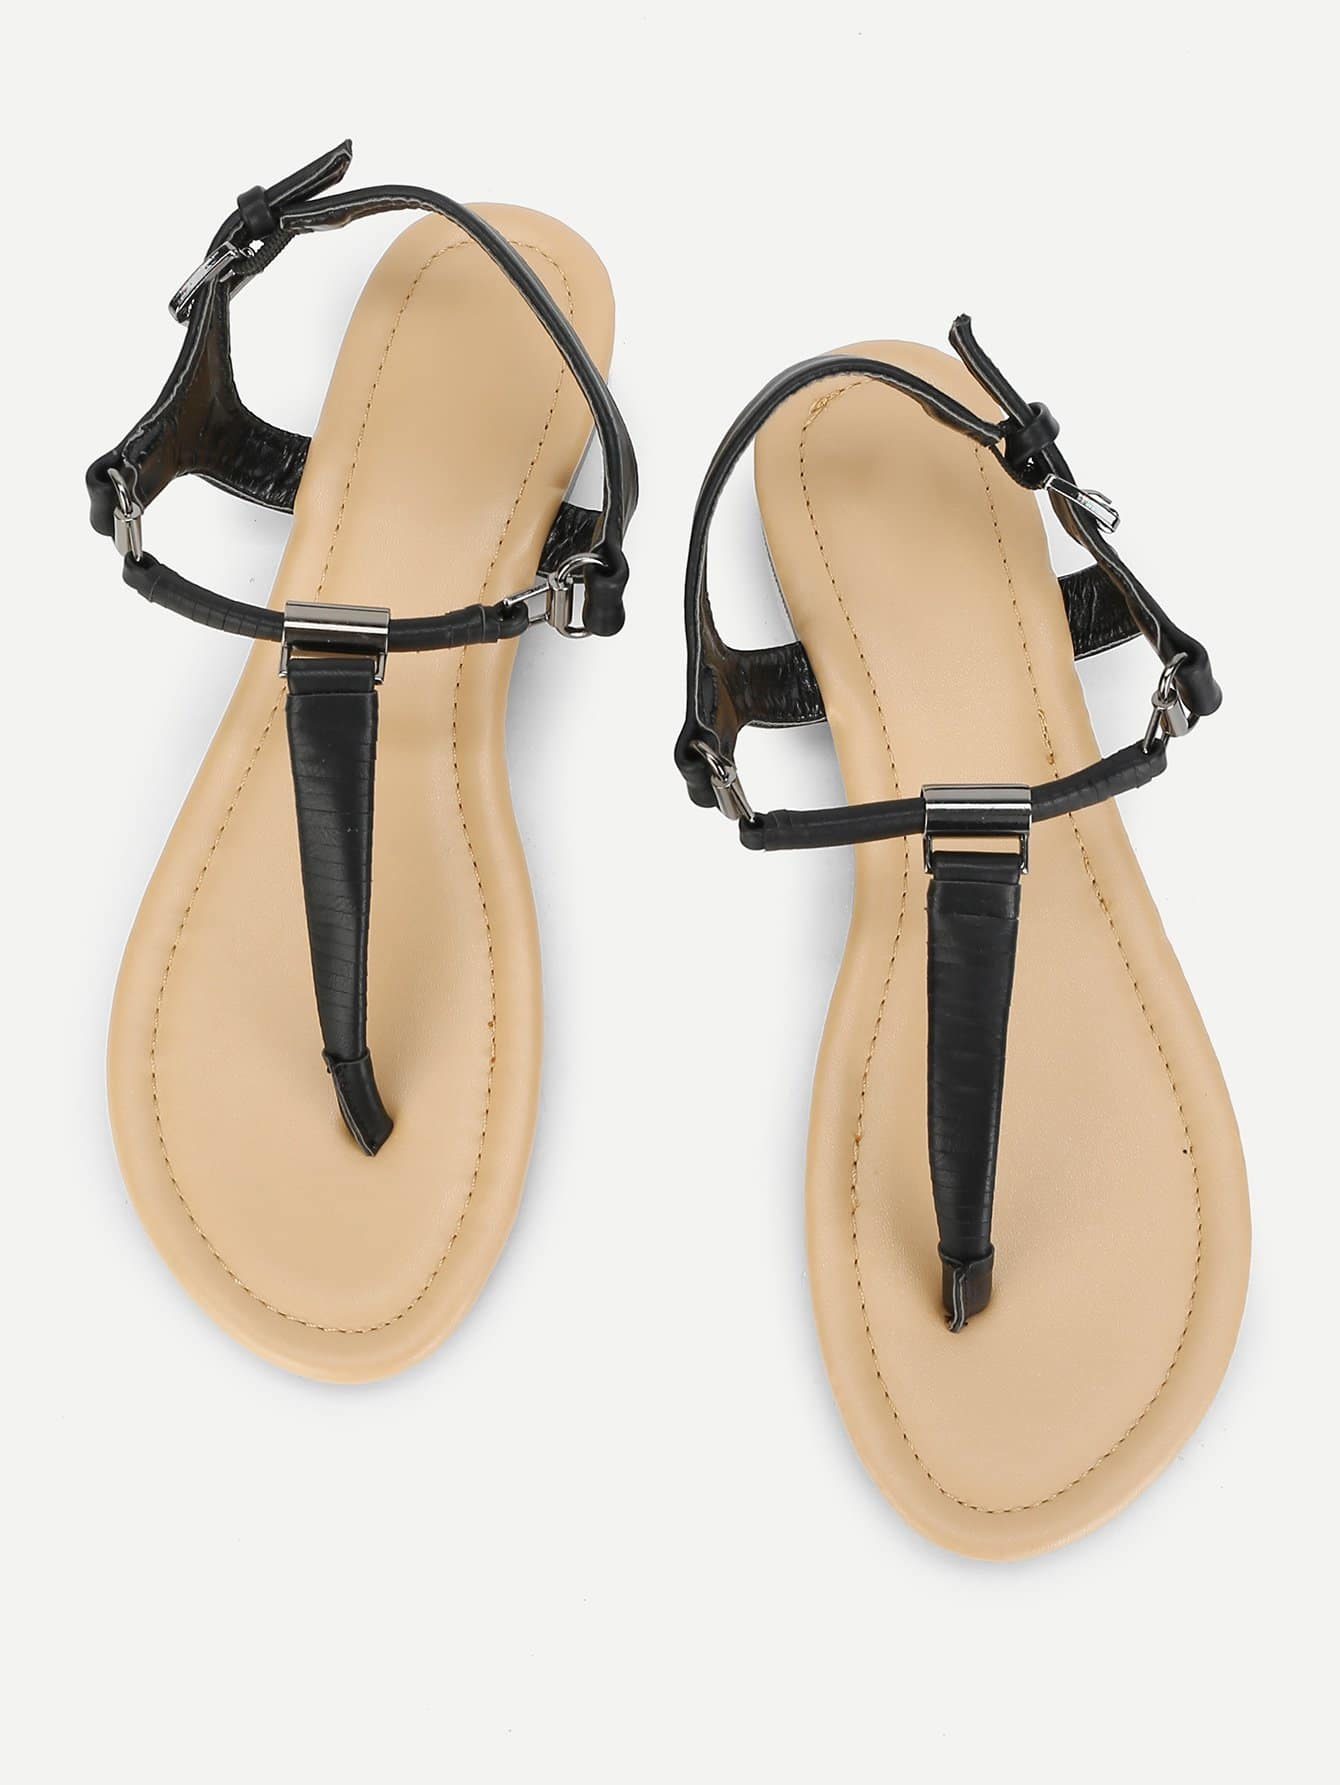 Toe Post Strappy Flat Sandals strappy toe post flat sandals